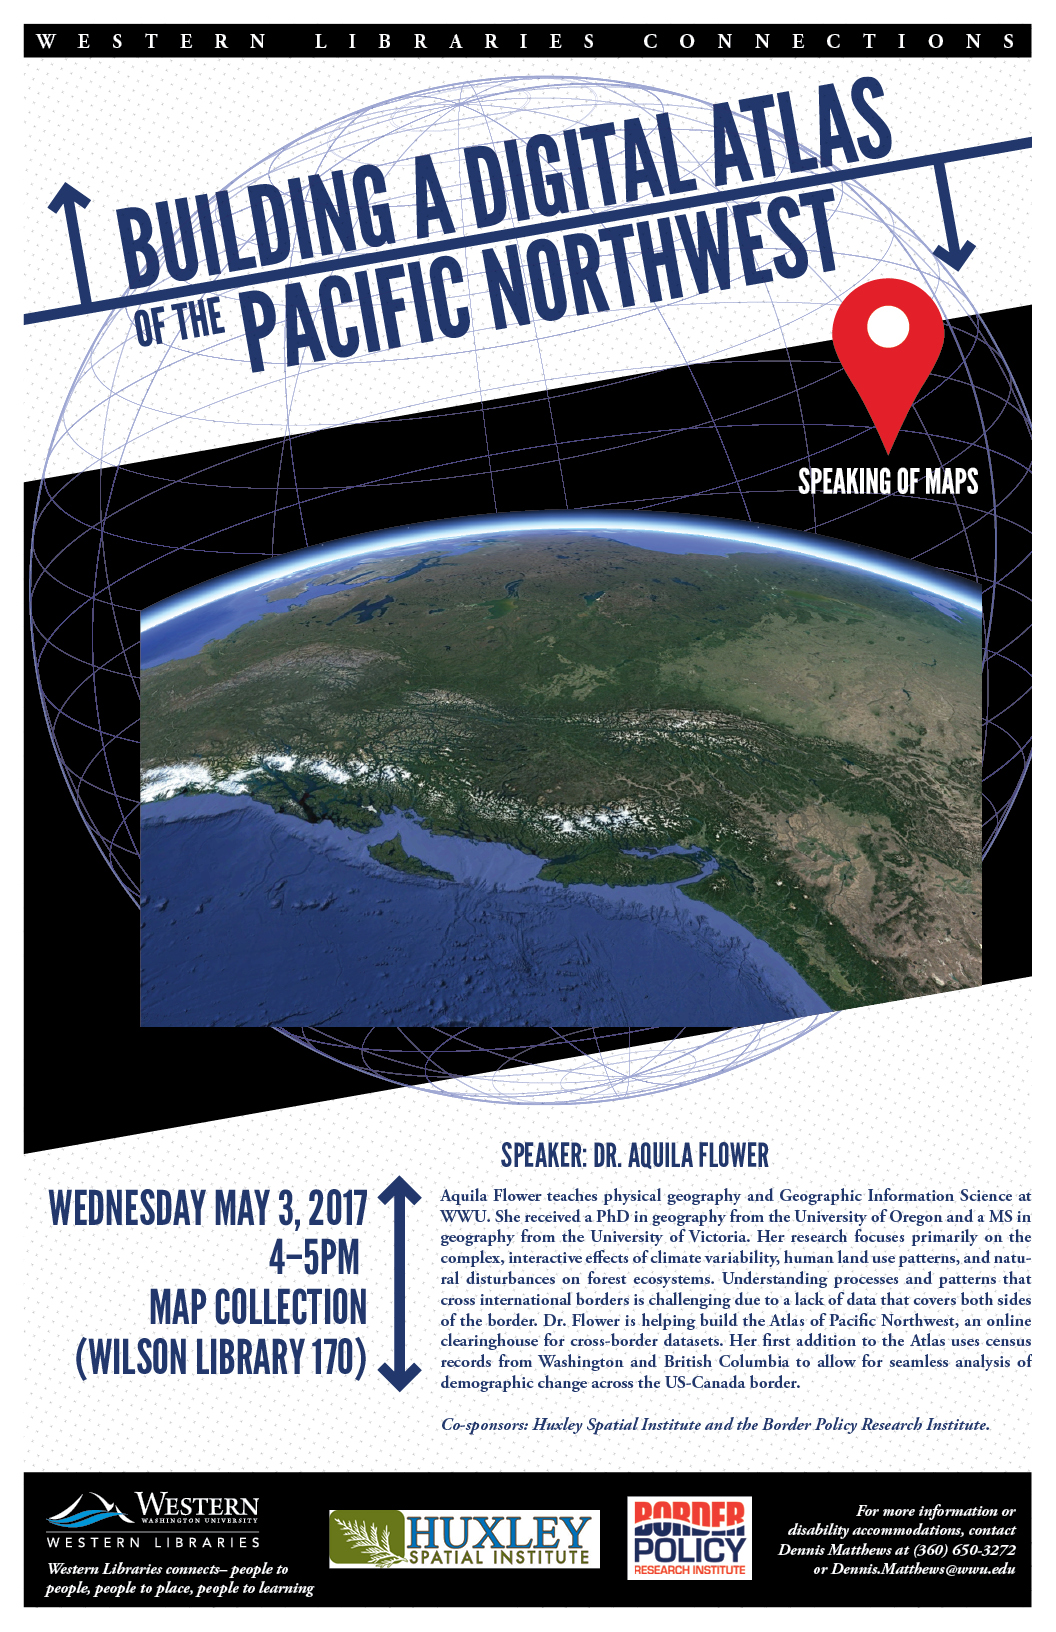 Building a Digital Atlas of the Pacific Northwest